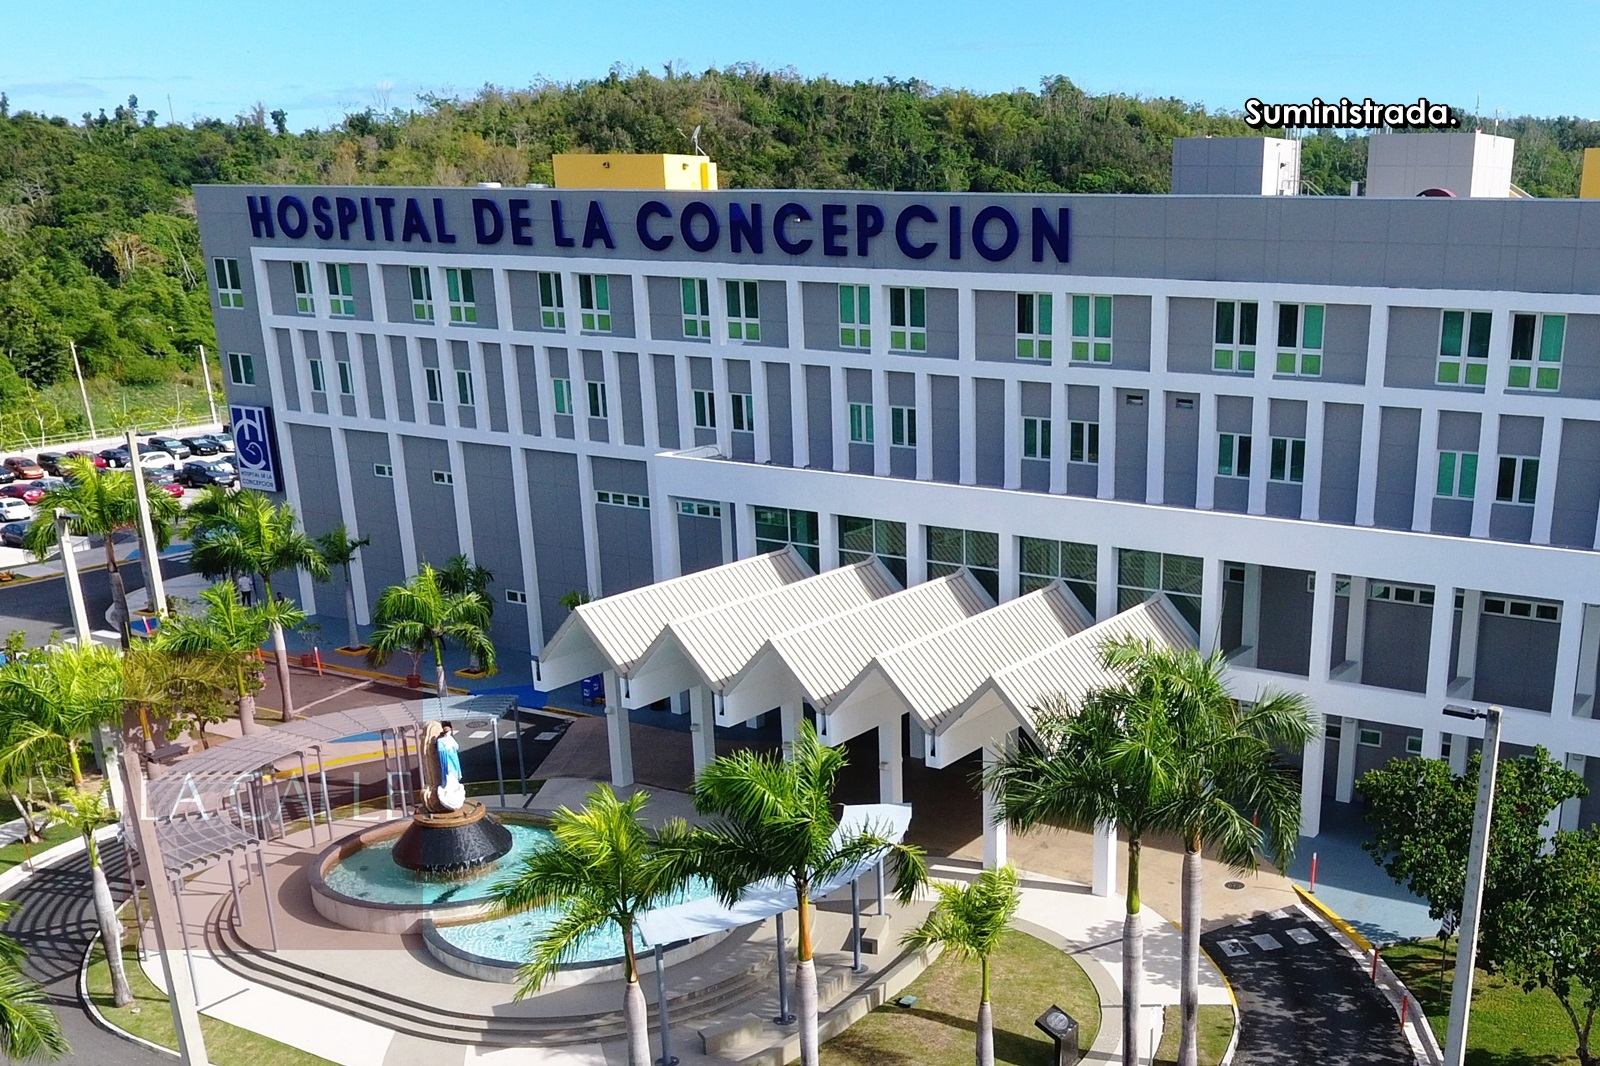 Hospital de la Concepcion wm